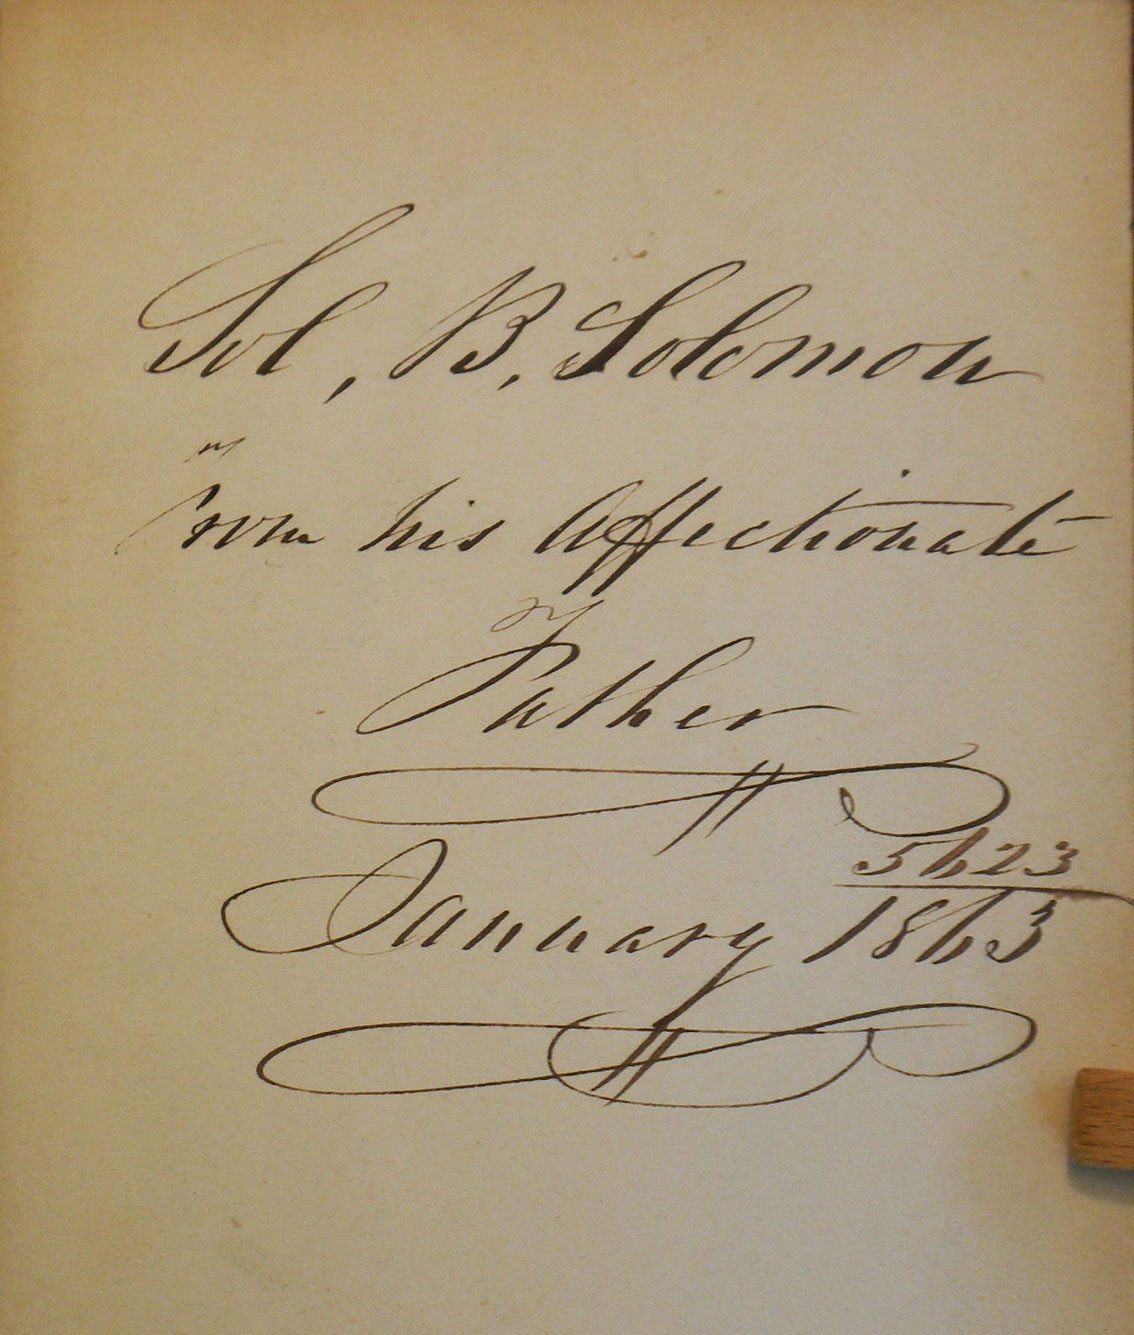 The inscription inside the first volume of the set, dated 1863, is to a prominent New York Jewish leader named Solomon B. Solomon. The writer is Solomon's father.